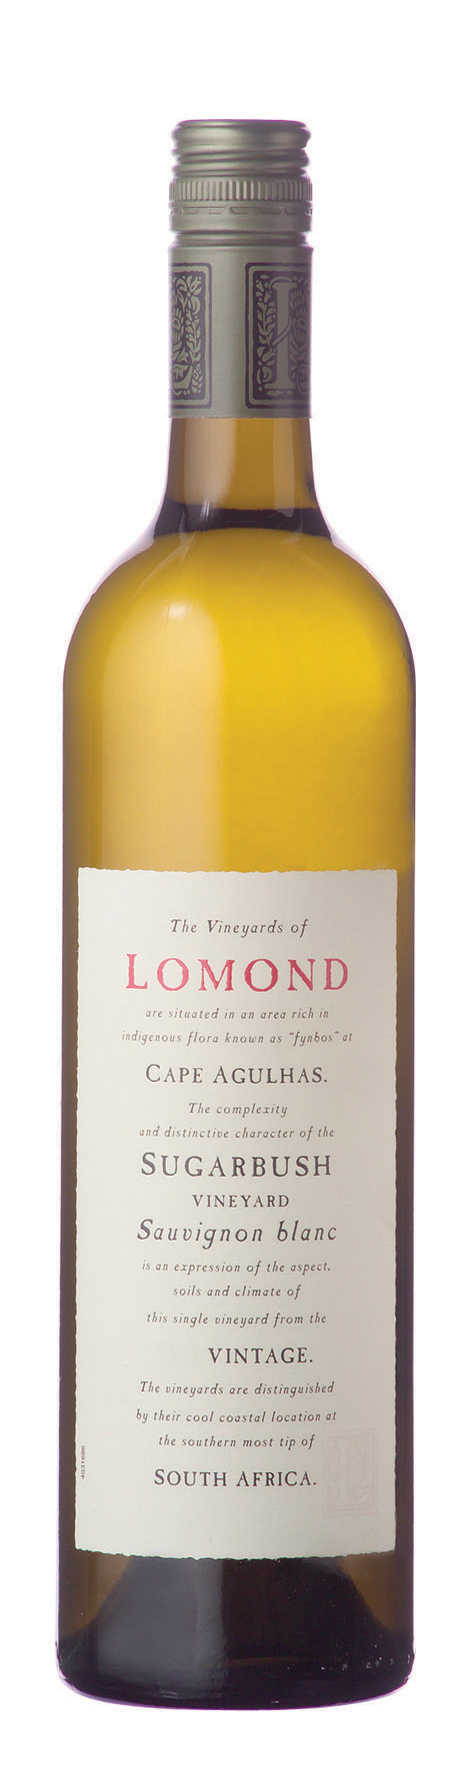 Lomond Sugarbush Single Vineyard, Sauvignon Blanc